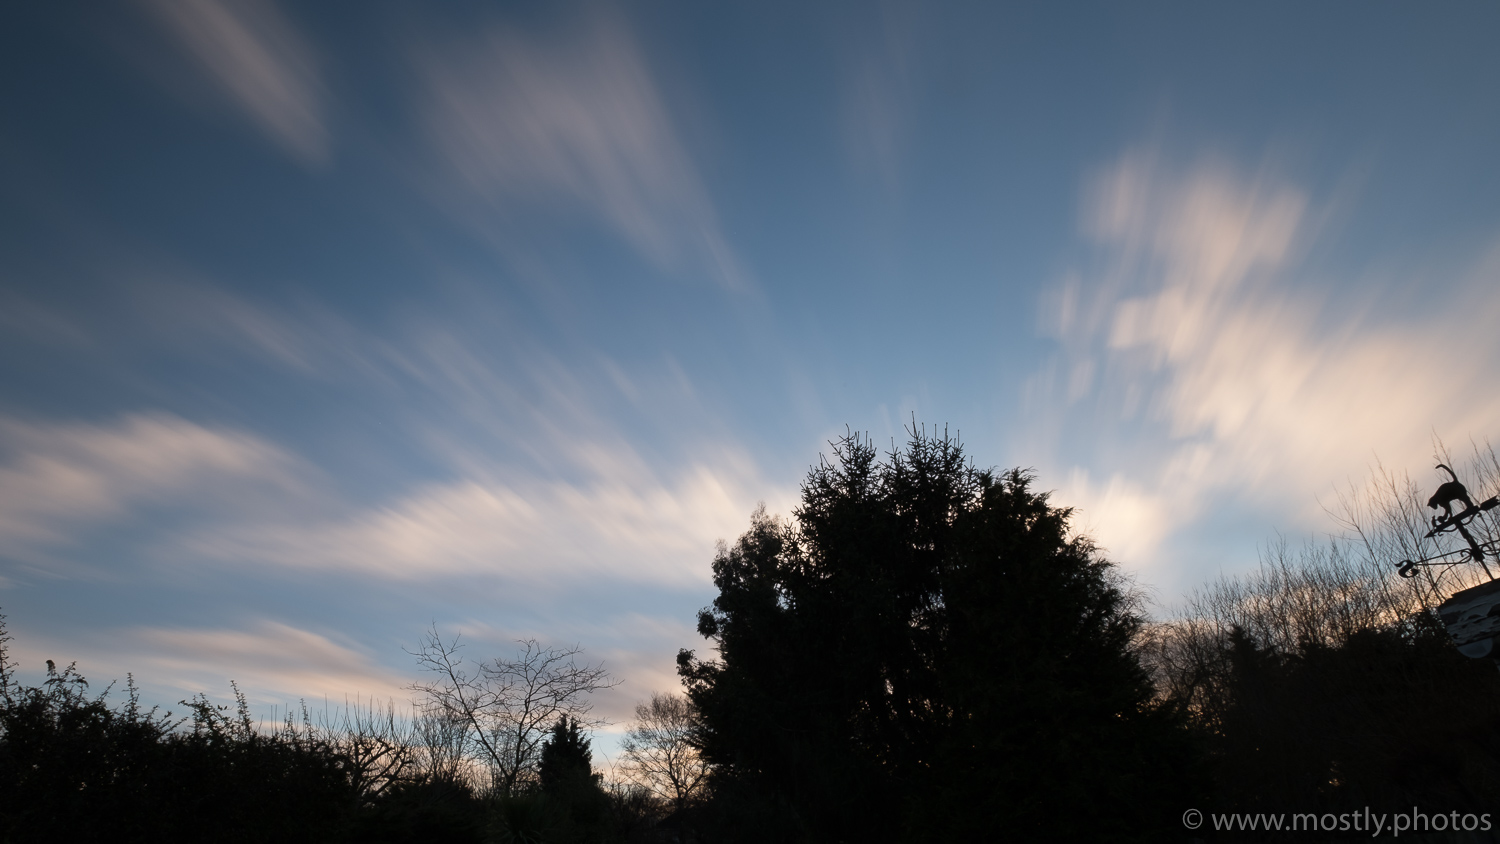 Fuji X-T2 and 10-24mm Lens Hoya 77mm Pro ND 1000 - Note the natural color of the late evening sky